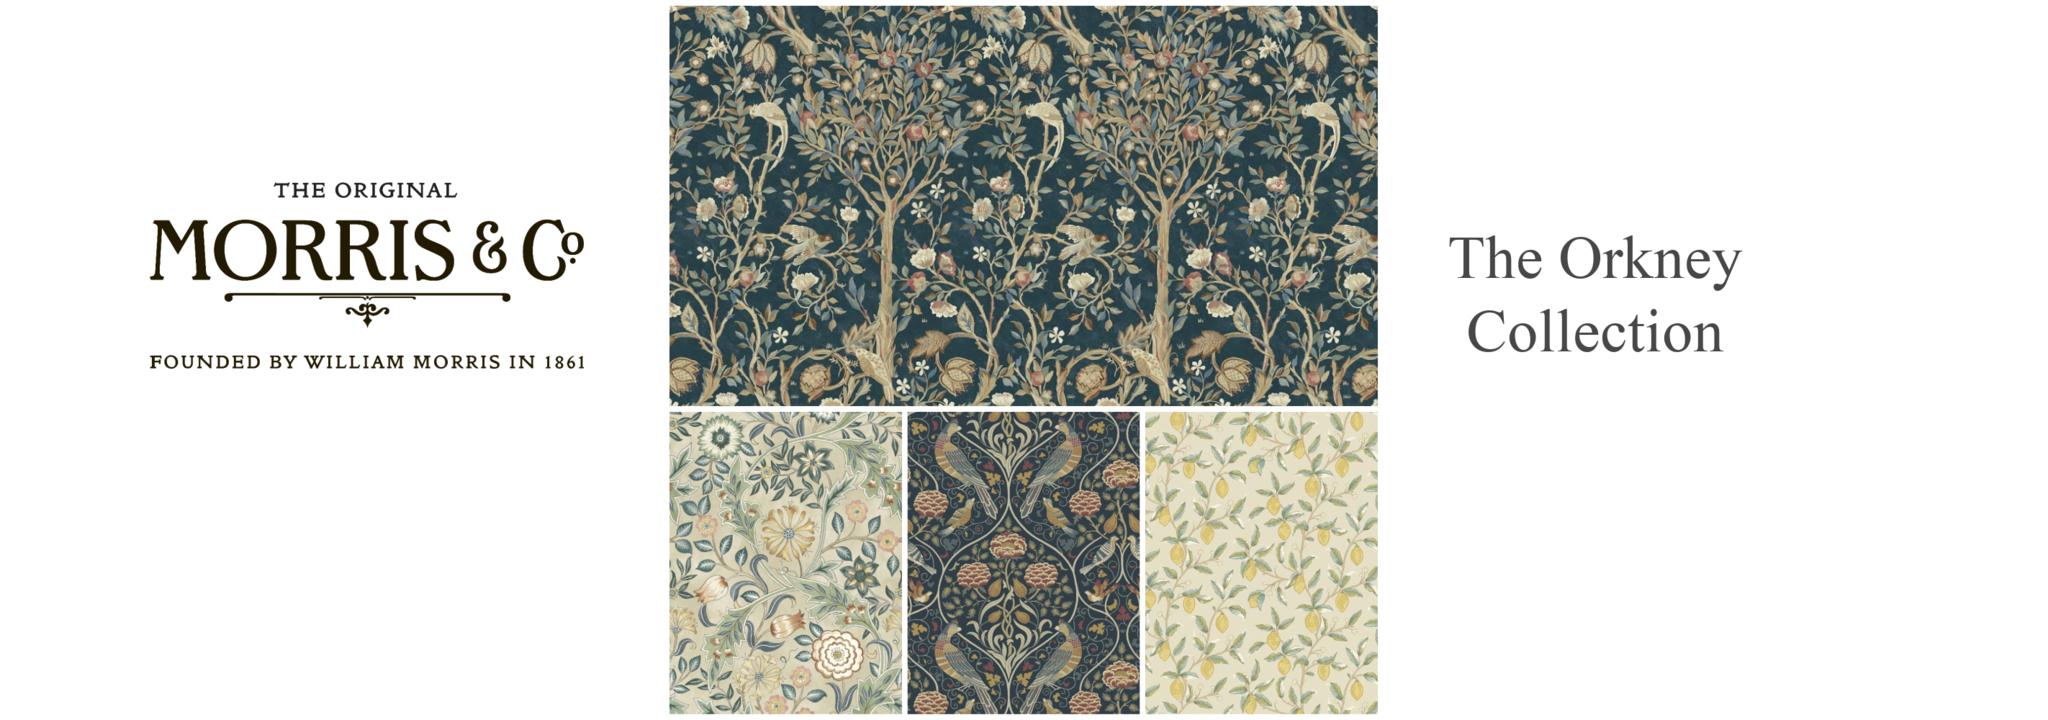 Orkney by William Morris & Co.